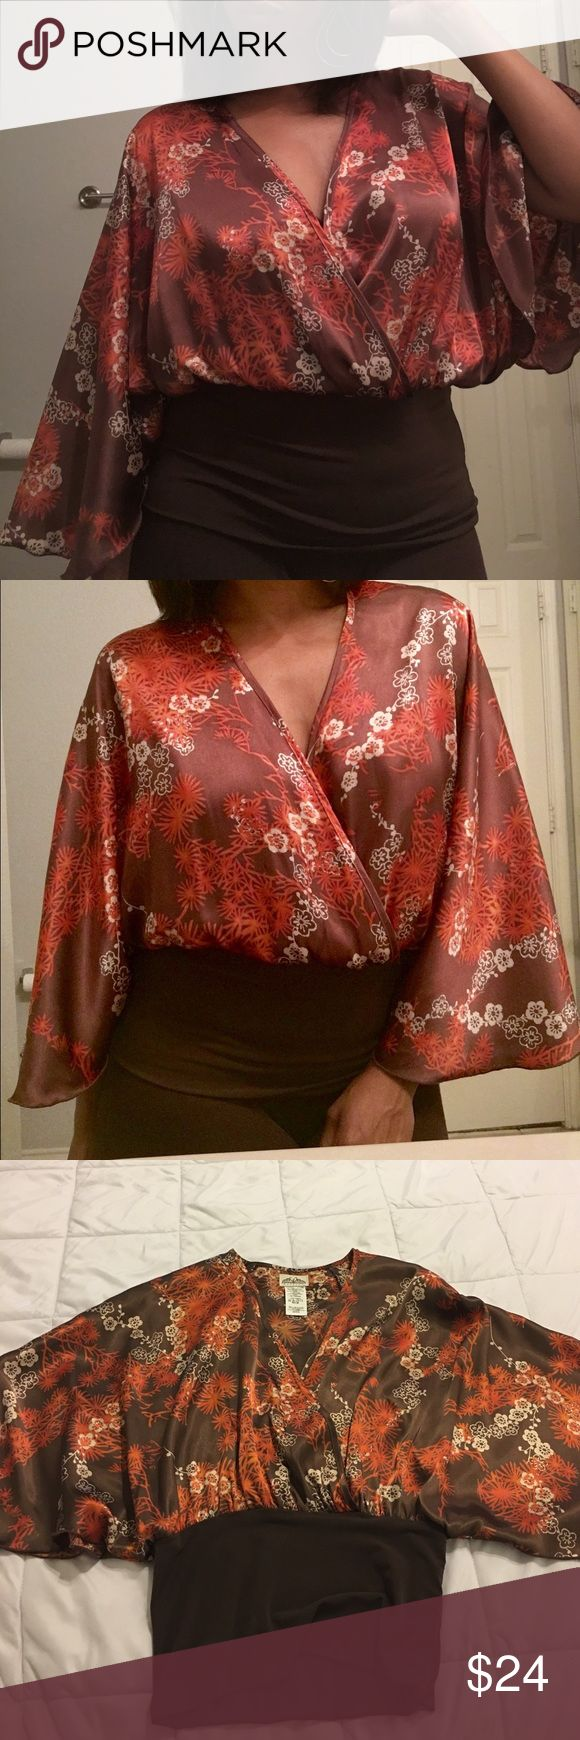 Gorgeous Japanese Inspired Batwing Top😍 Beautiful batwing top that features vibrant colors of burnt orange, cream, and shimmers of gold throughout. Soft silk-like material with an ultra flattering waist cinching bottom! Beautiful Gorgeous!! Excellent Condition!! 💋 WINDSOR Tops Blouses